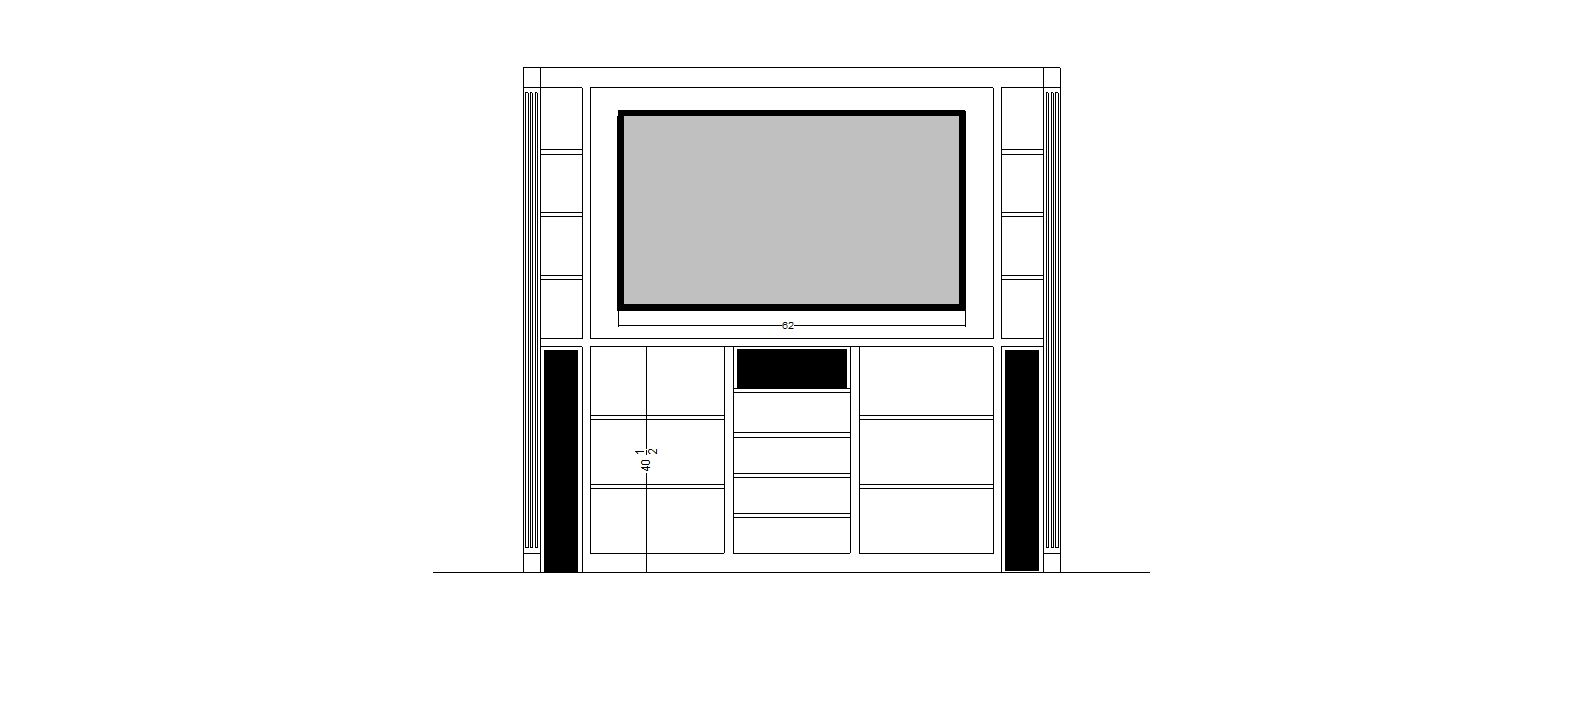 PLans for the television cabinet.